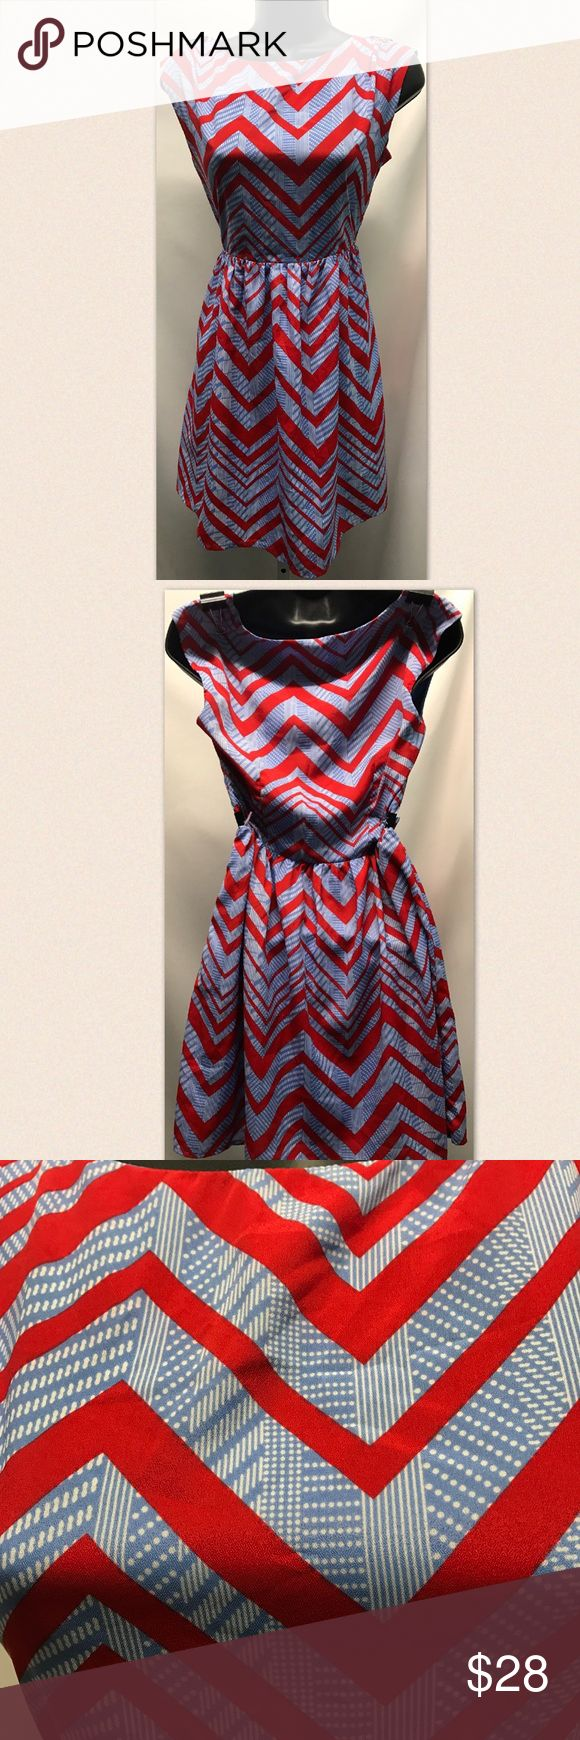 PINK OWL dress NWT Pink Owl silky blue printed boutique dress with red chevron. New with tags, never worn! Pink Owl Dresses